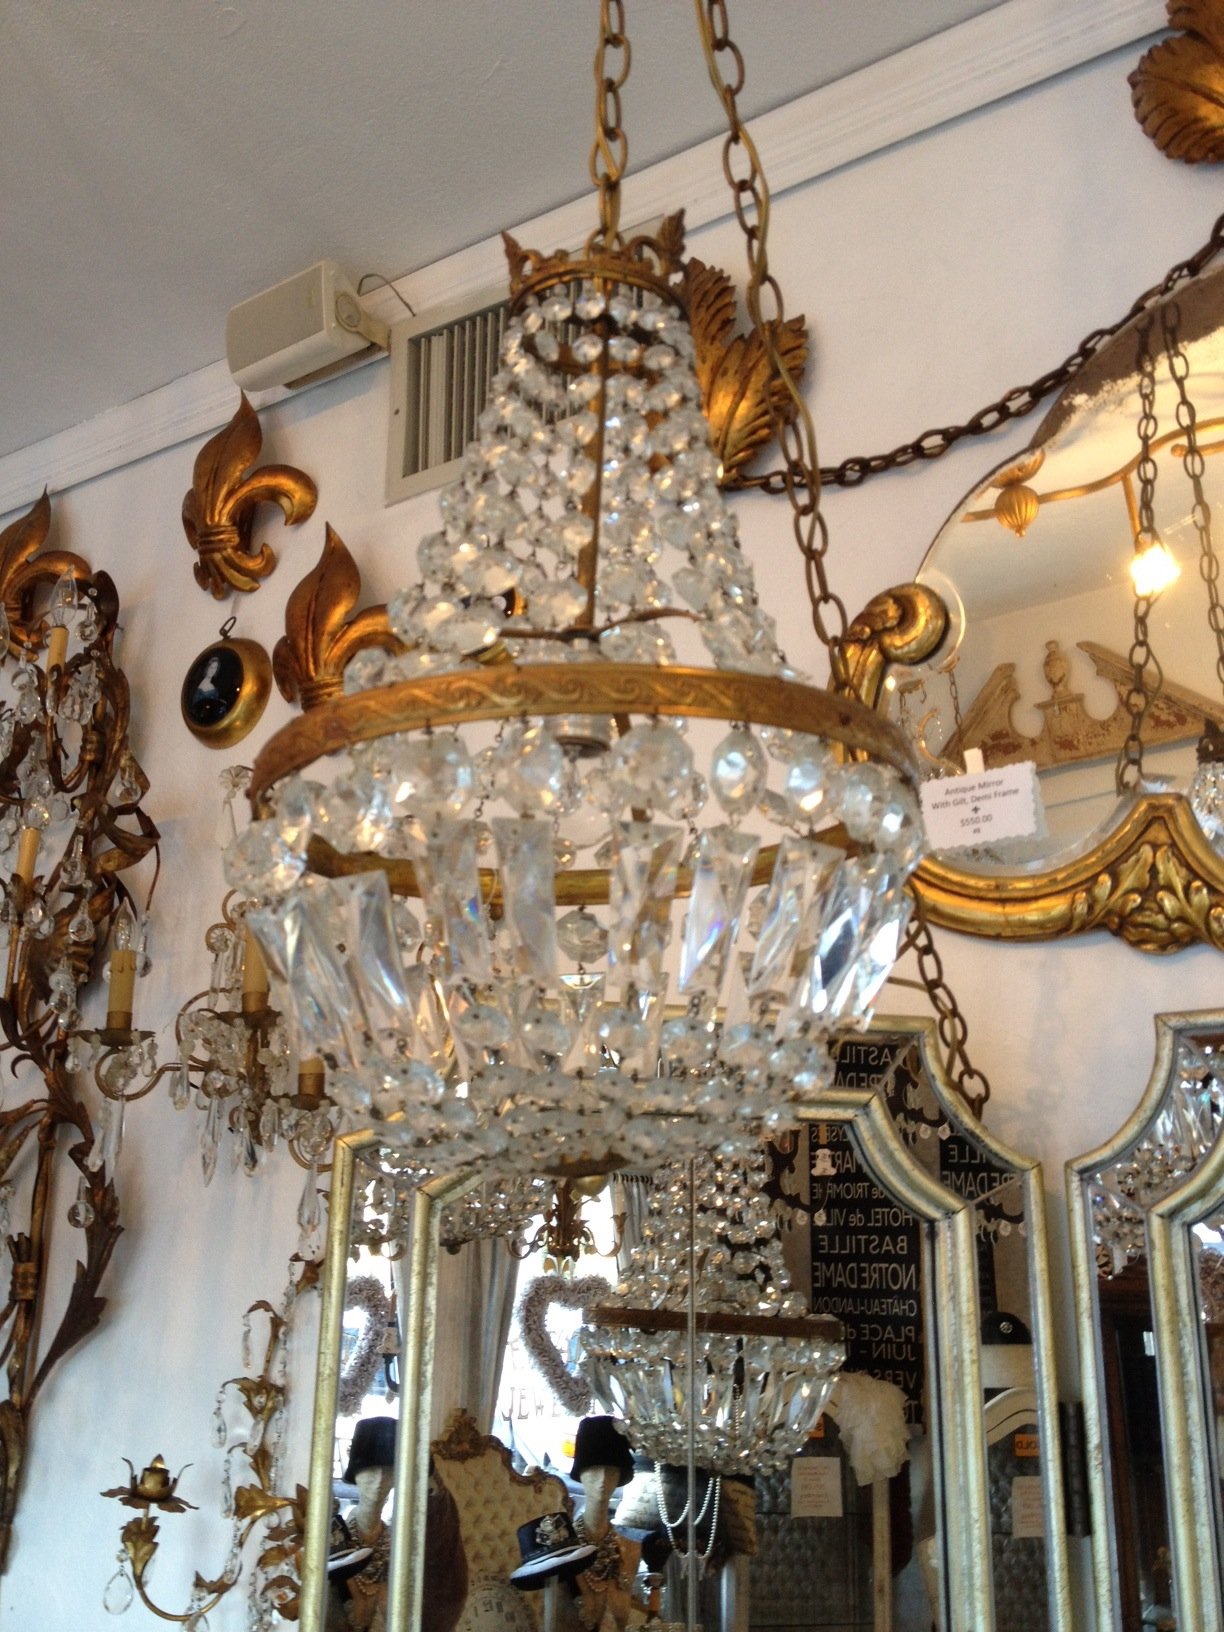 Buy The Latest In Plug In Type Chandeliers From Online